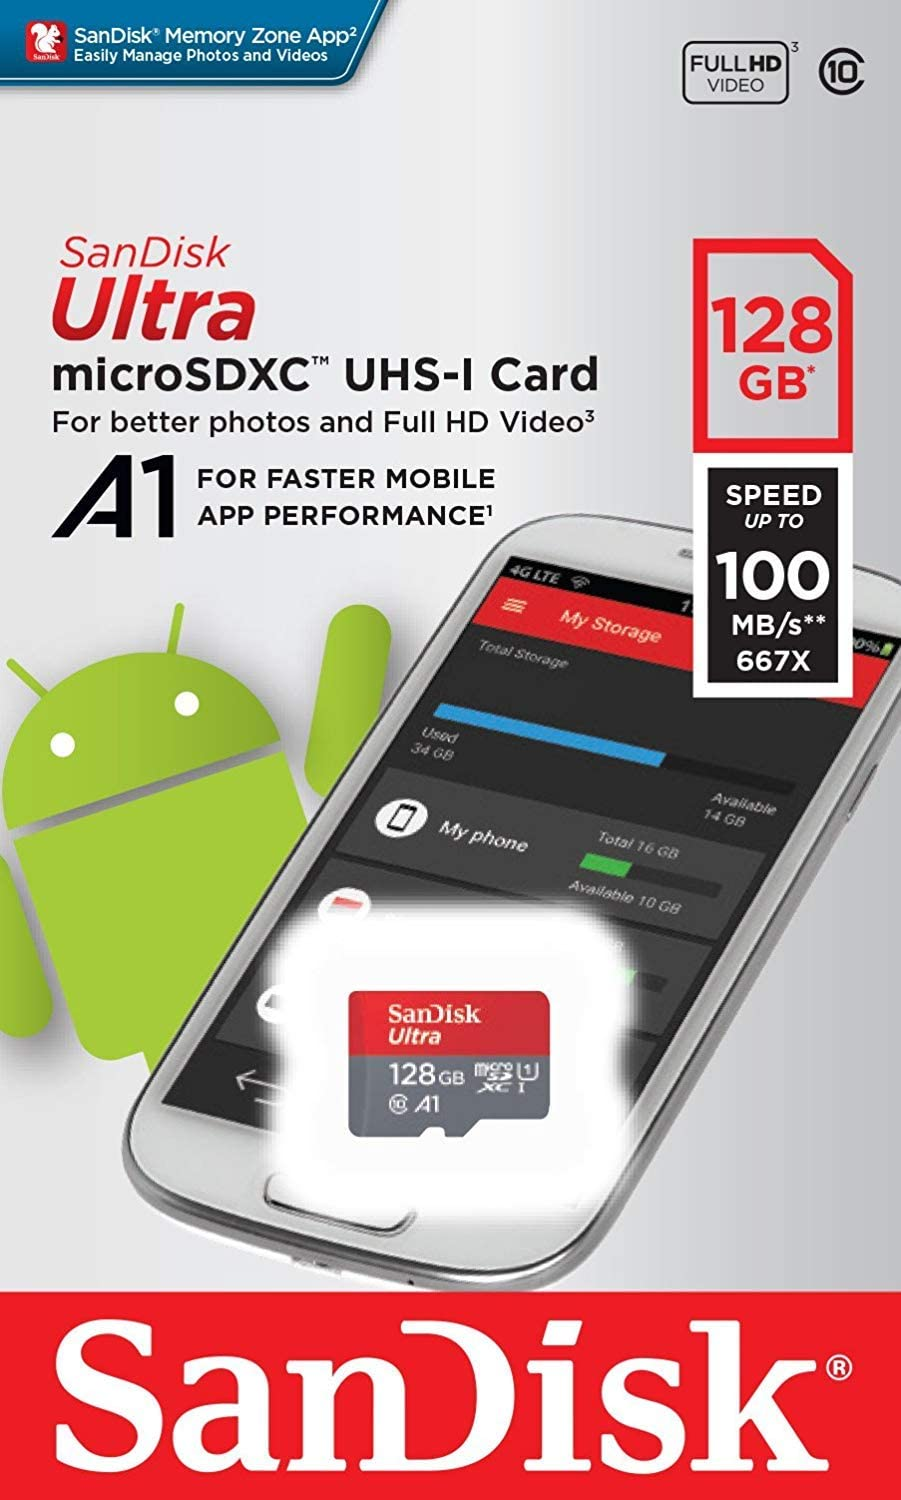 SanDisk Ultra 128GB MicroSDXC Verified for HTC U12 Life by SanFlash 100MBs A1 U1 C10 Works with SanDisk